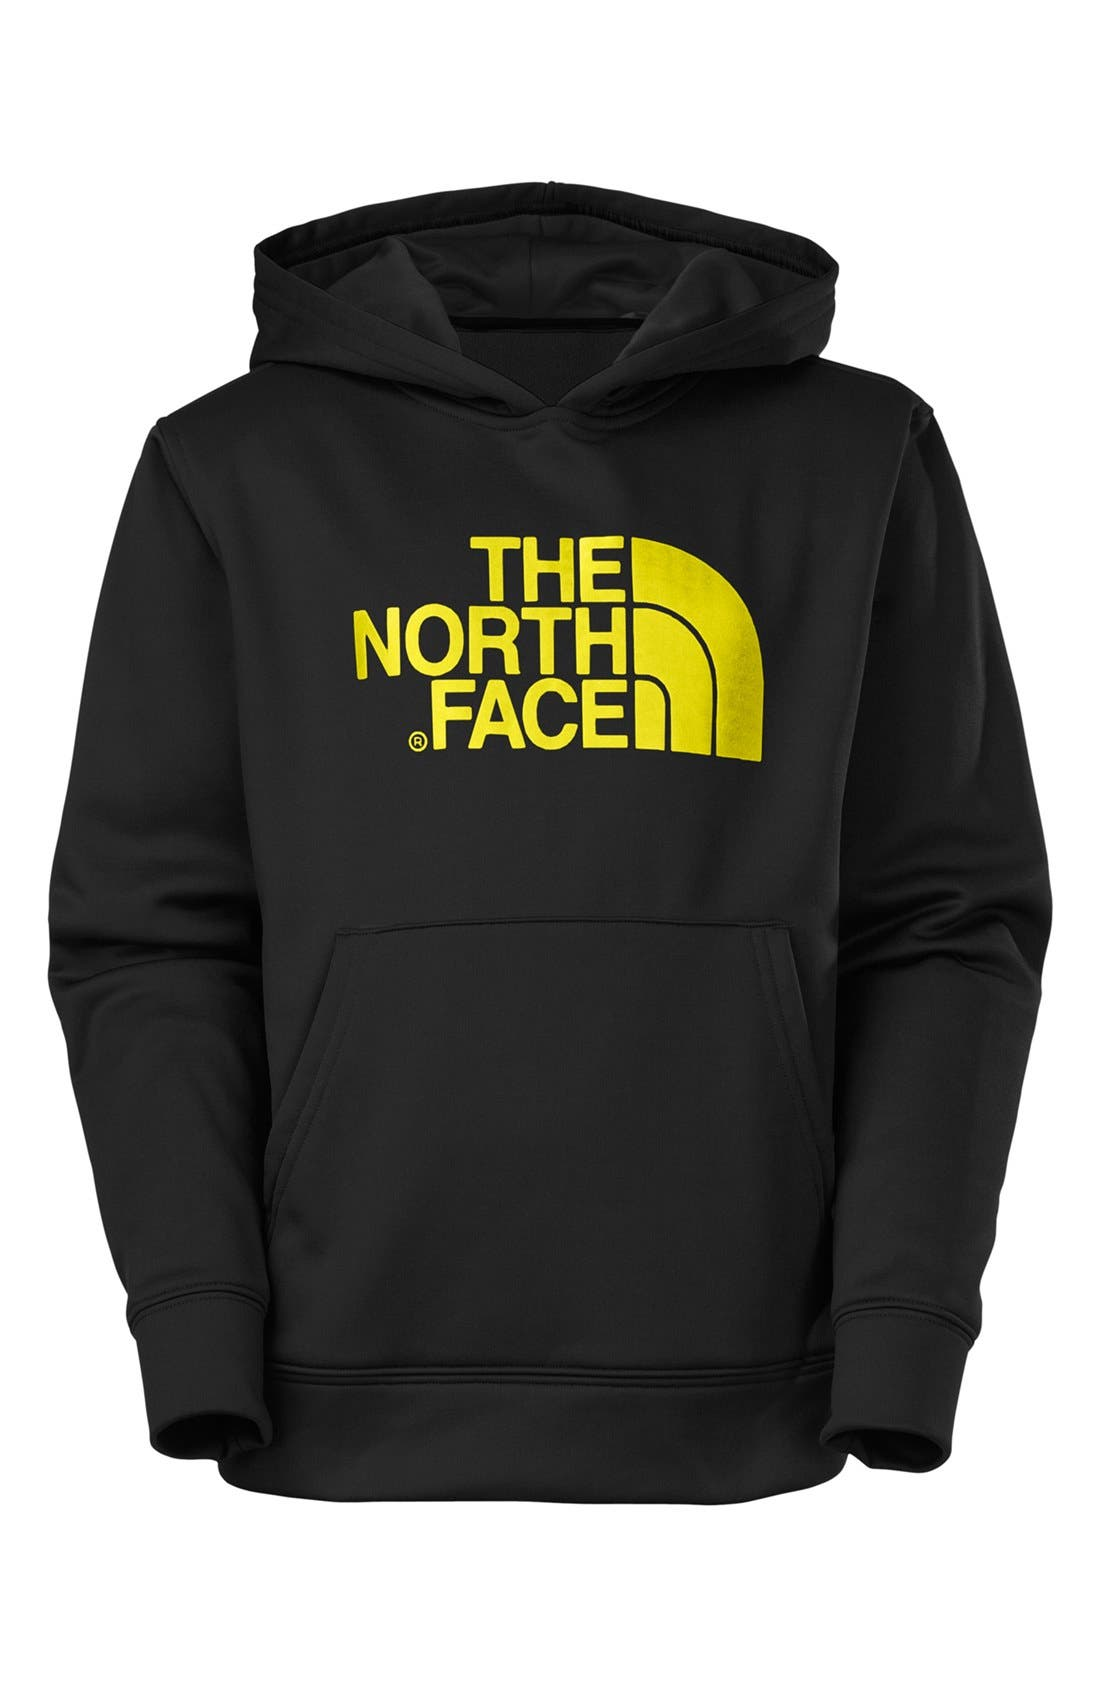 Alternate Image 1 Selected - The North Face 'Logo Surgent' Fleece Pullover Hoodie (Big Boys)